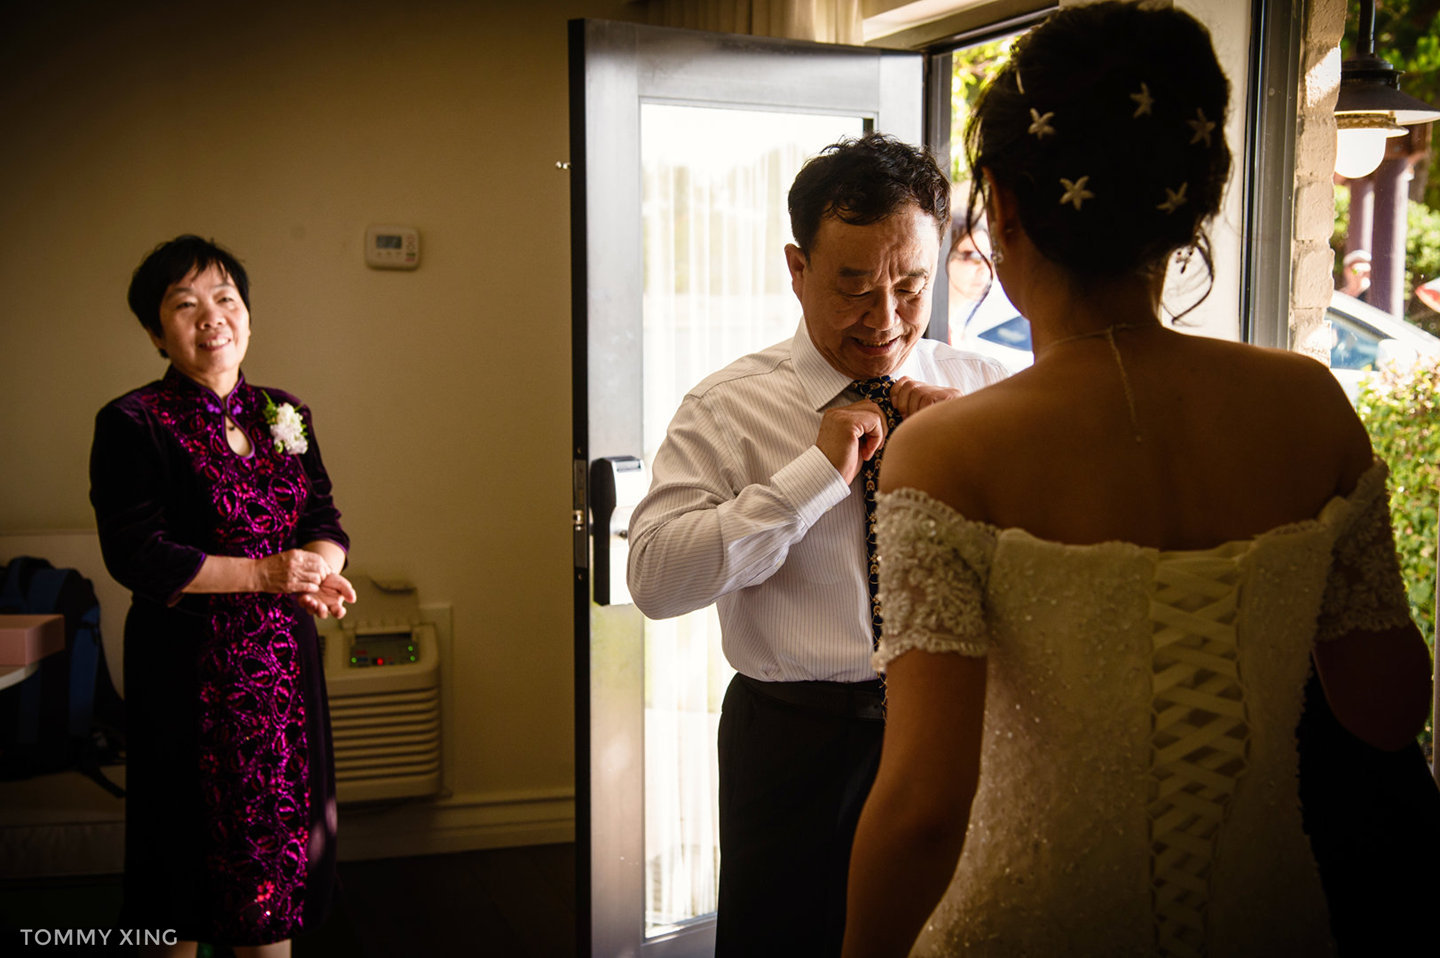 Paradise Point Resort Wedding Xiaolu & Bin San Diego 圣地亚哥婚礼摄影跟拍 Tommy Xing Photography 洛杉矶婚礼婚纱照摄影师 044.jpg